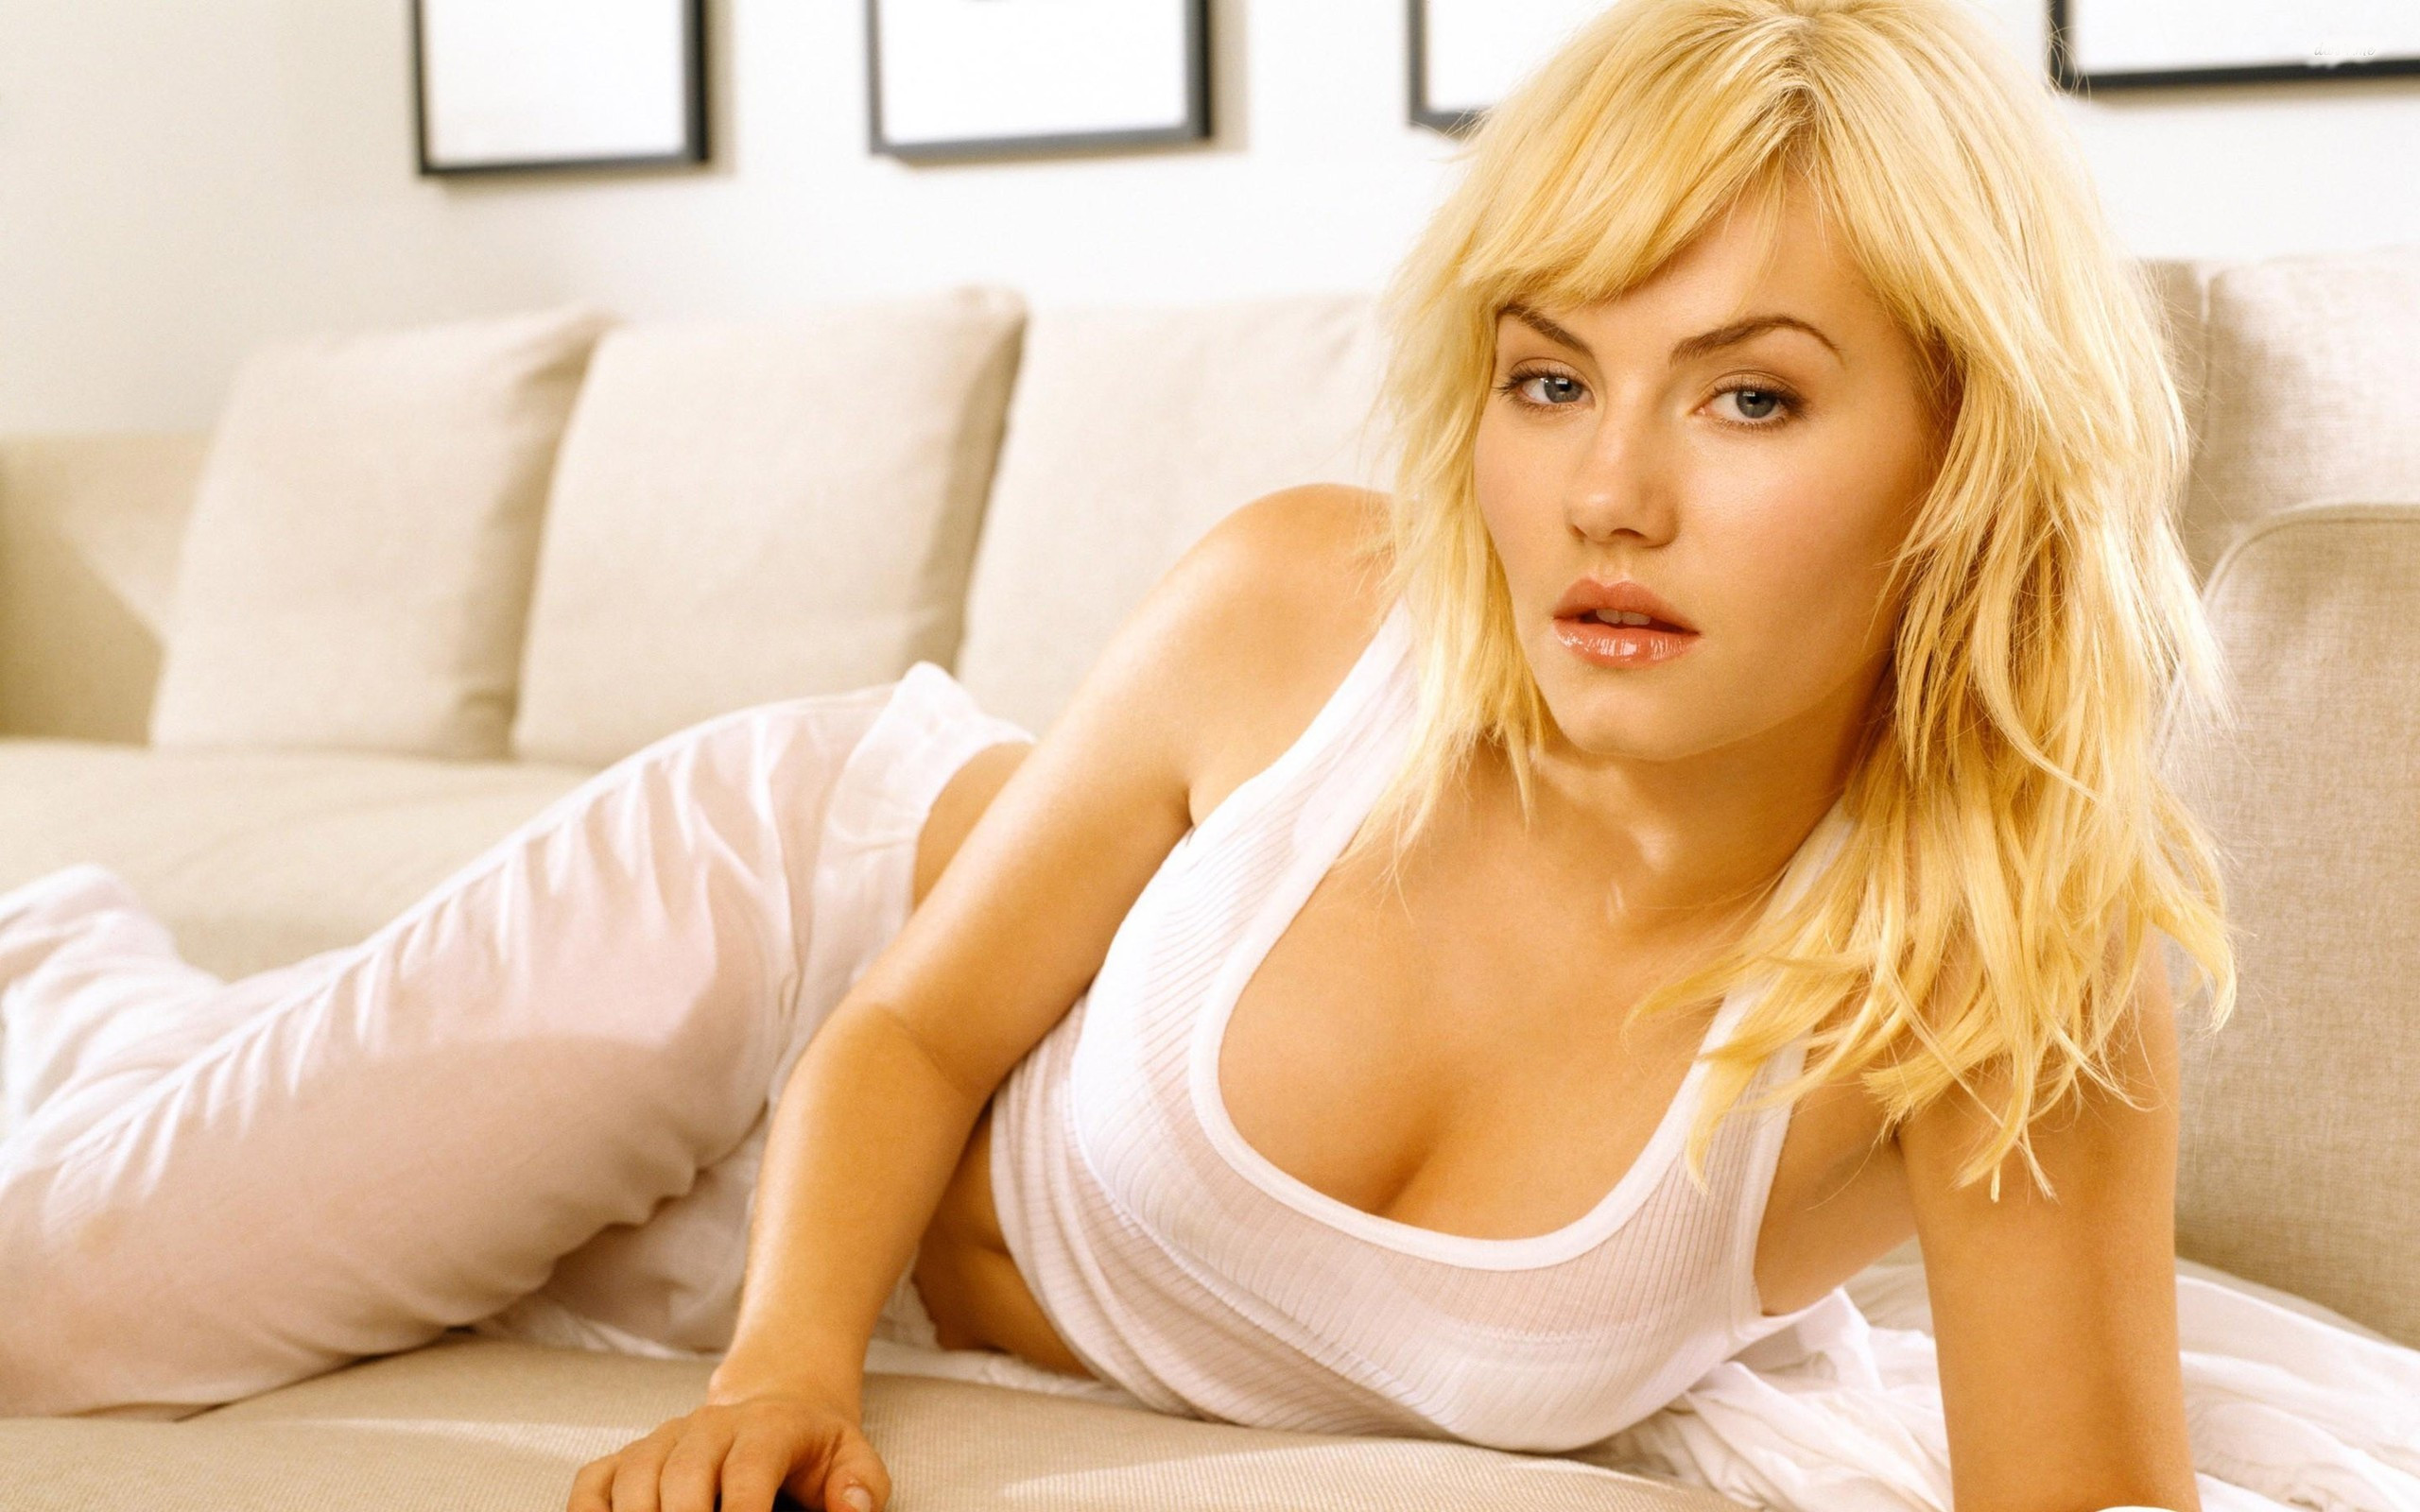 Actress Wallpaper - Hot Elisha Cuthbert in White dress at Latest Wall